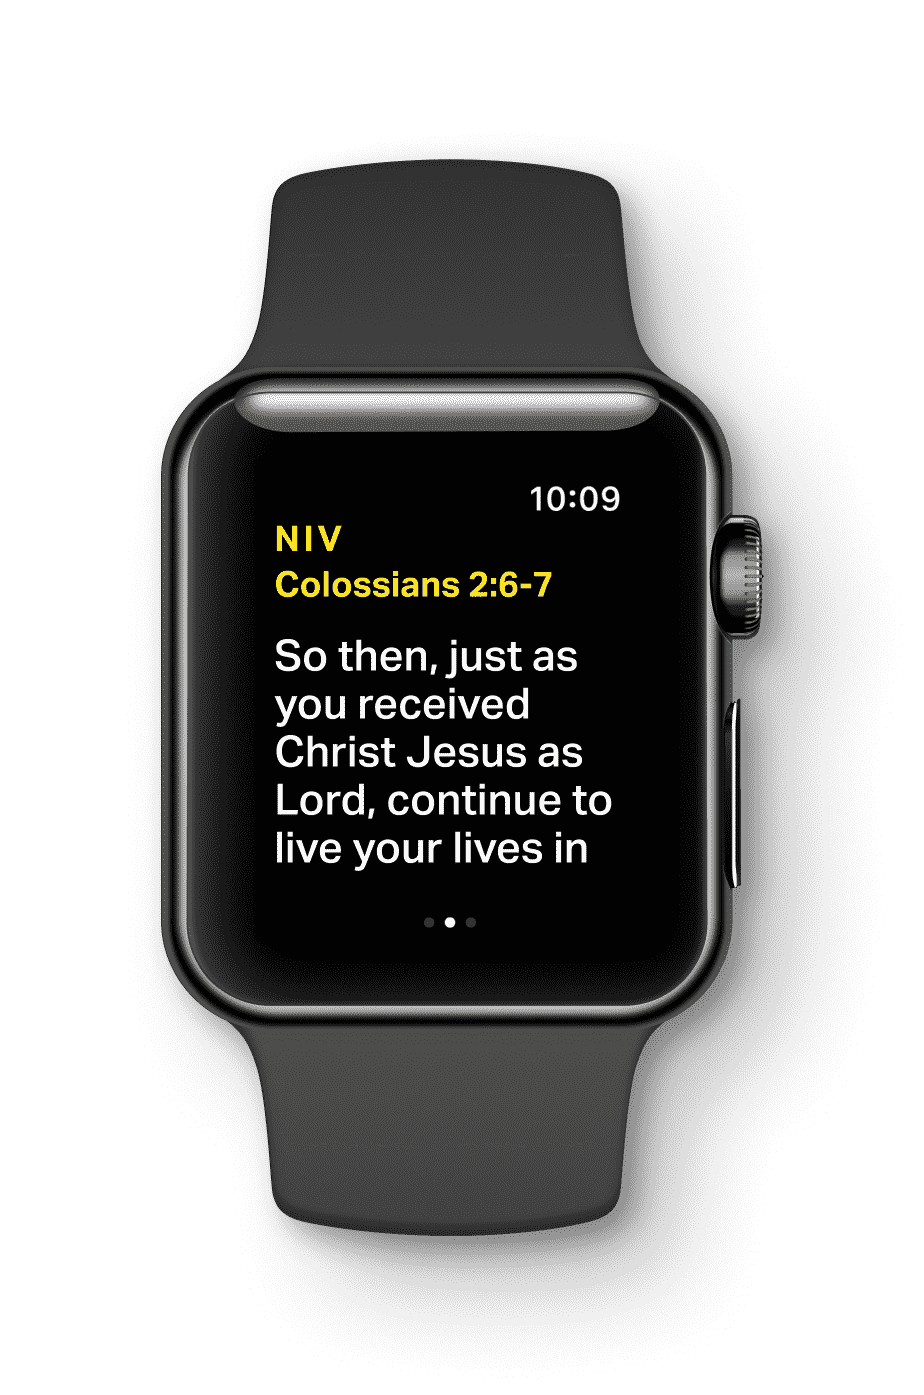 YouVersion scripture on watch